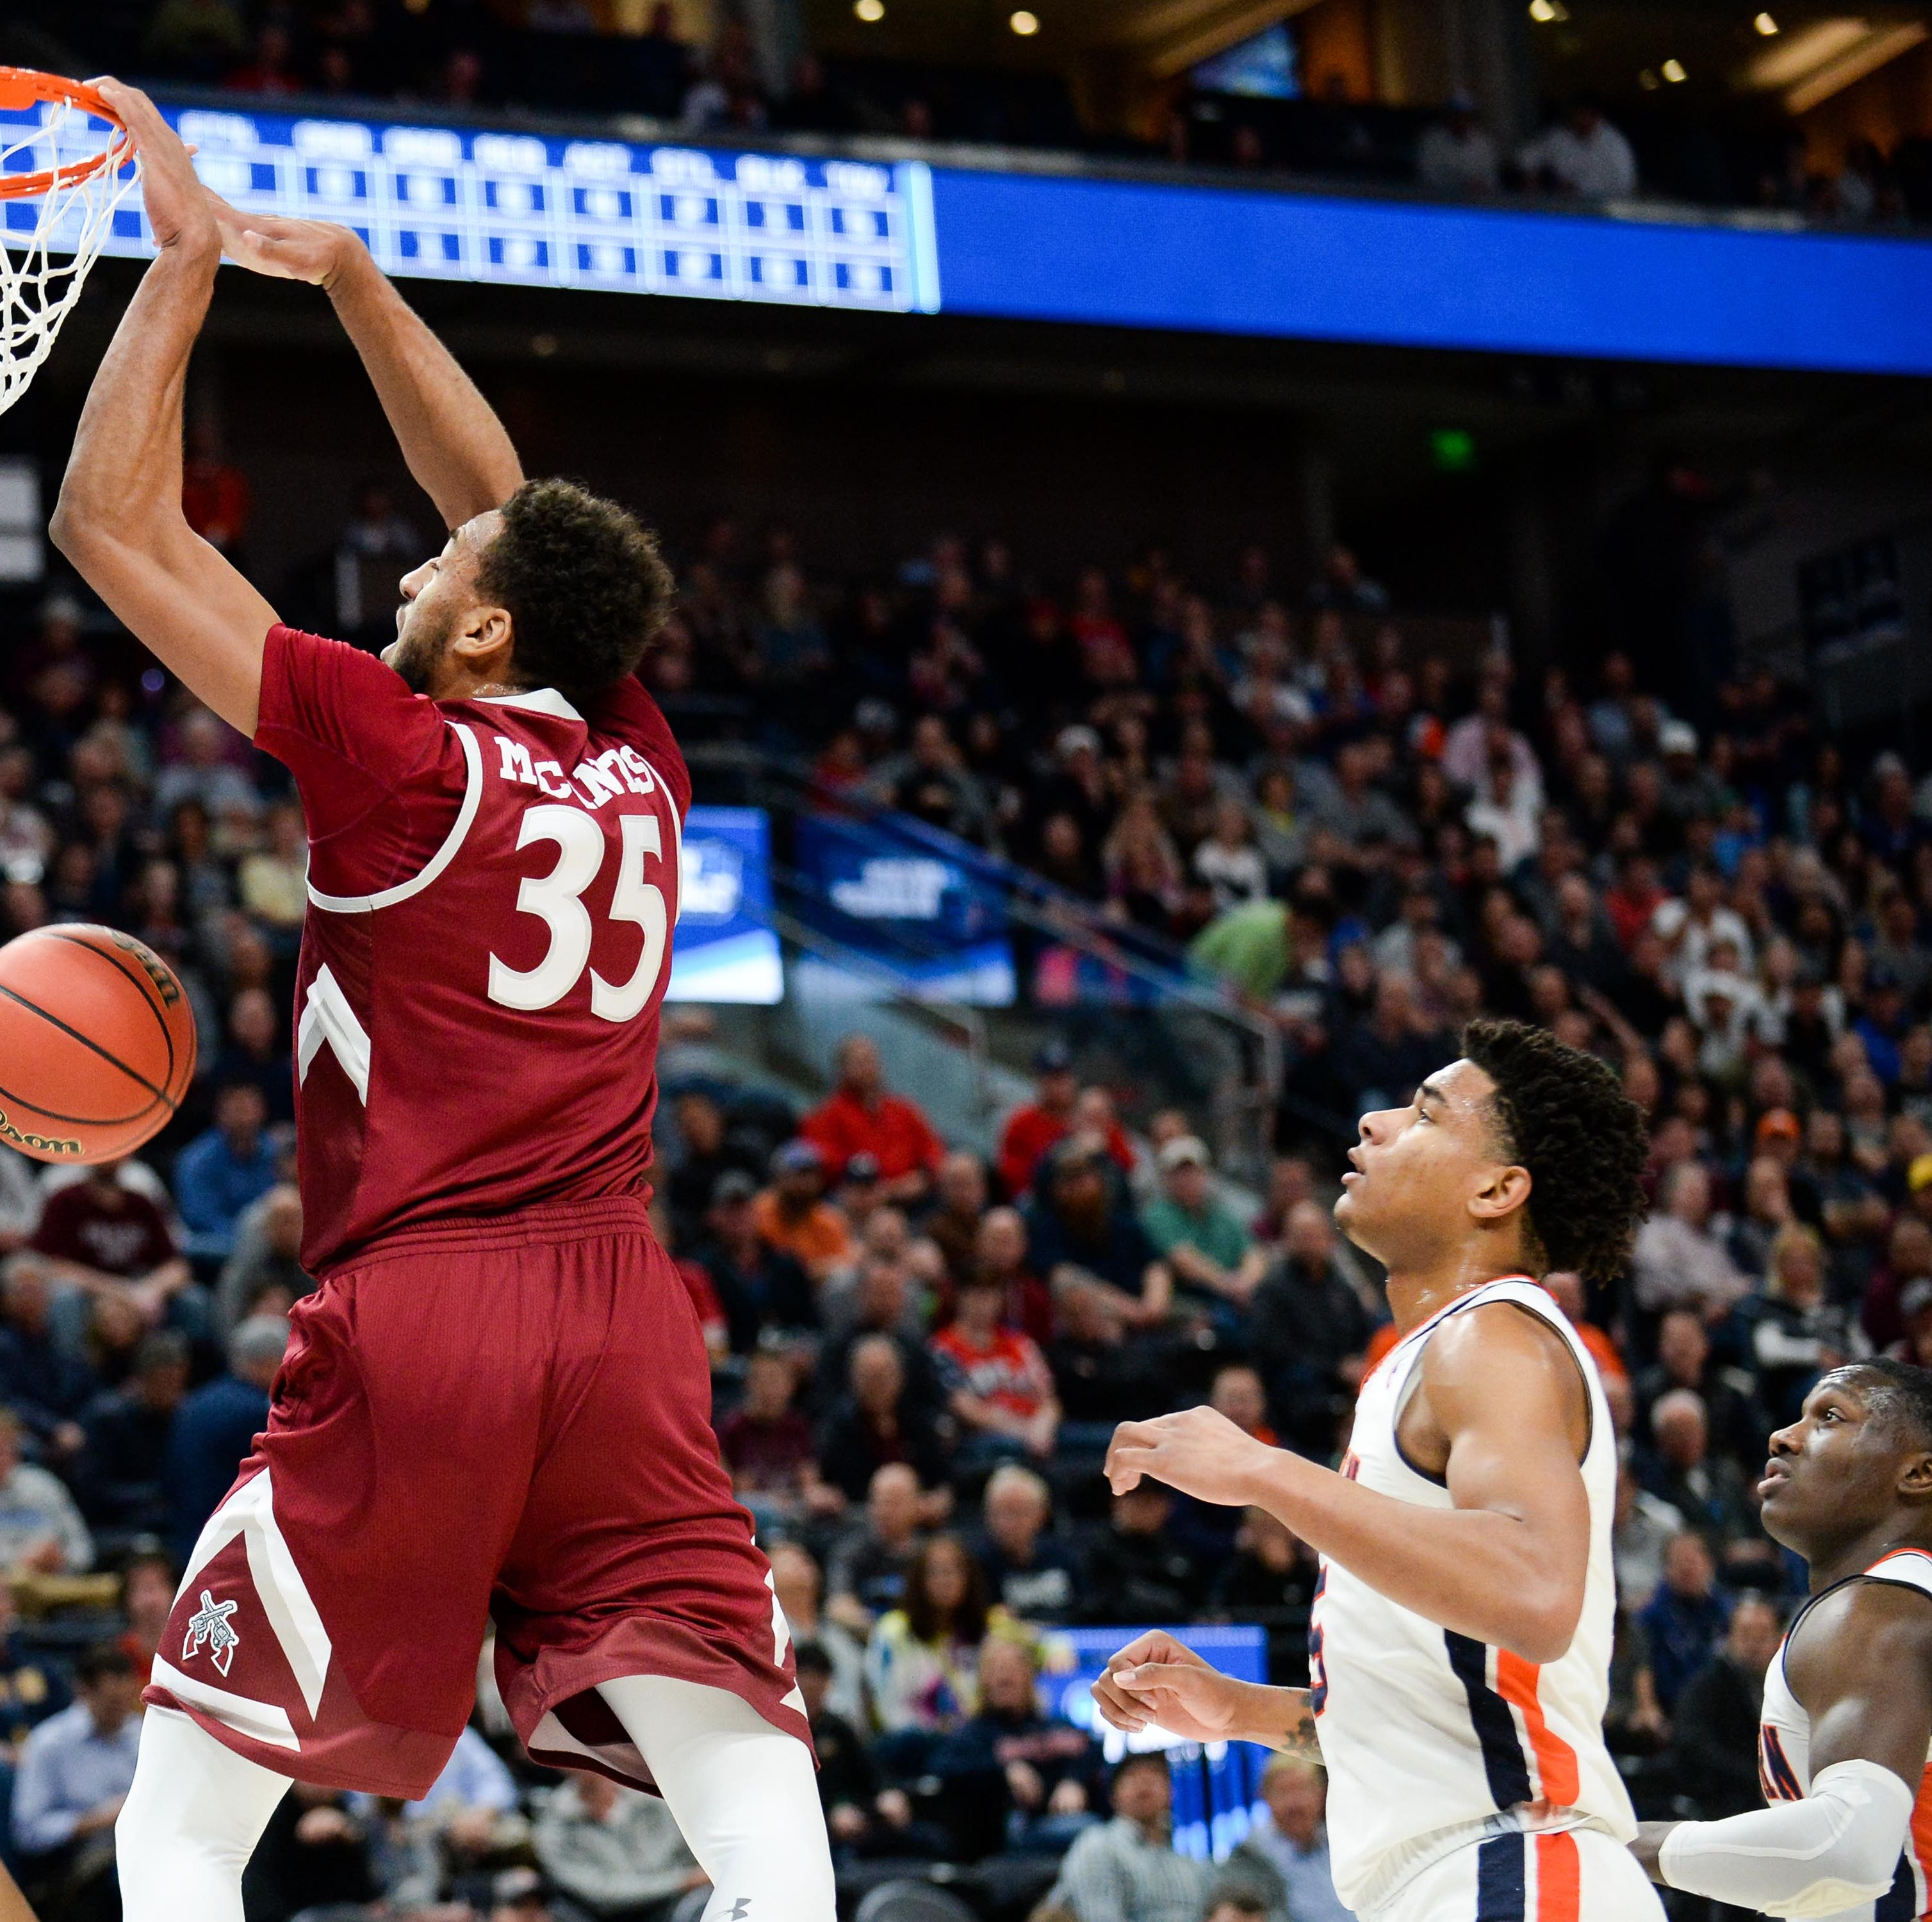 NMSU Basketball falls in heartbreaker to Auburn: March Madness in full effect